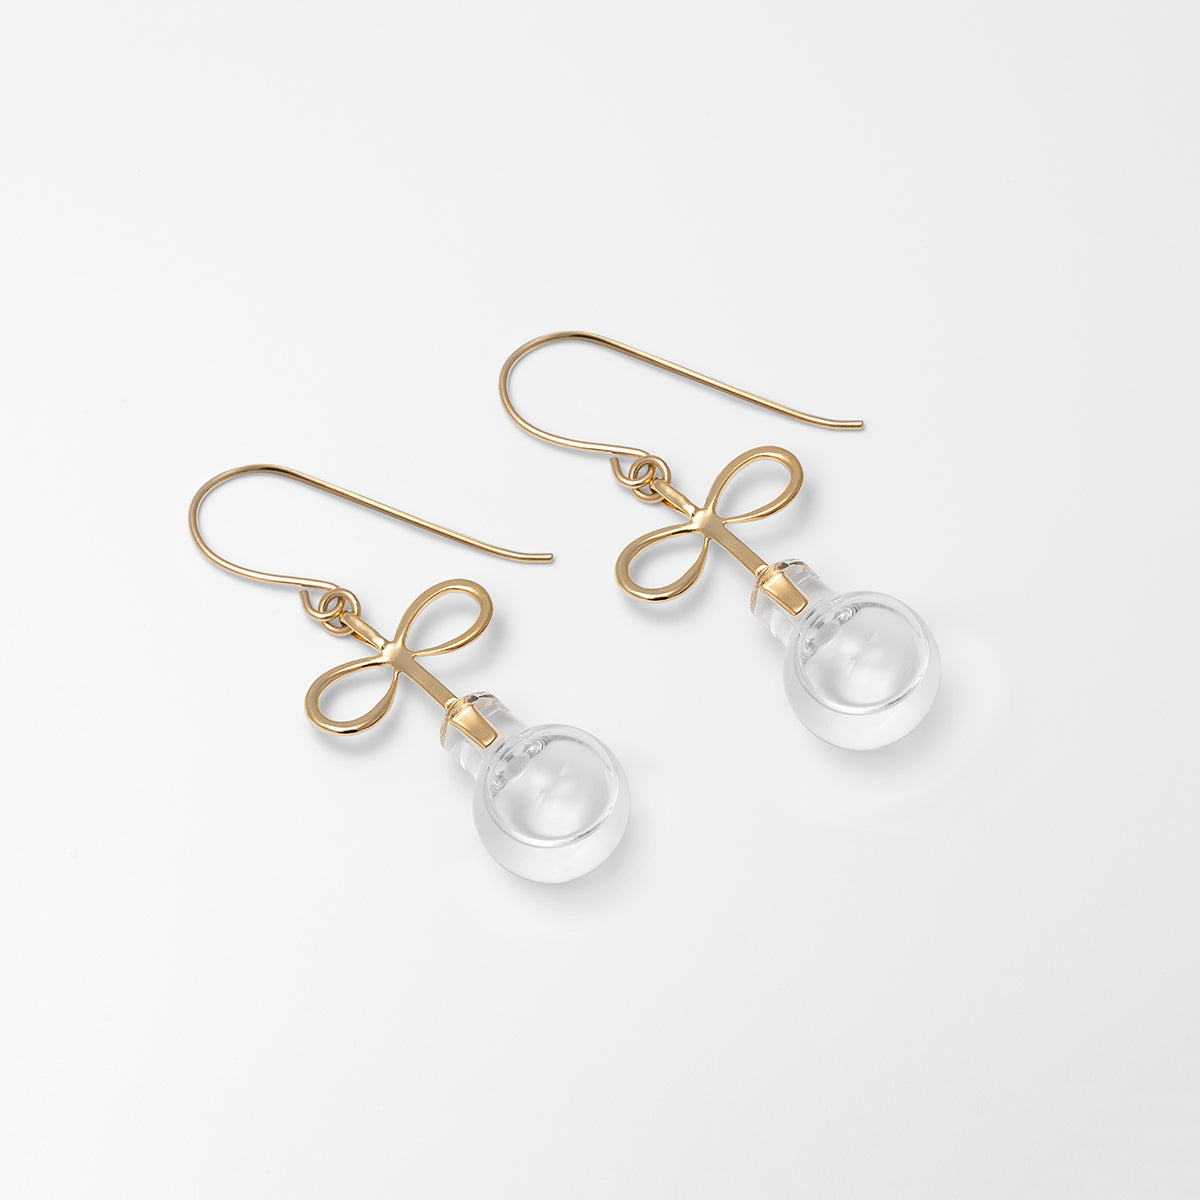 Infinity Water Earrings